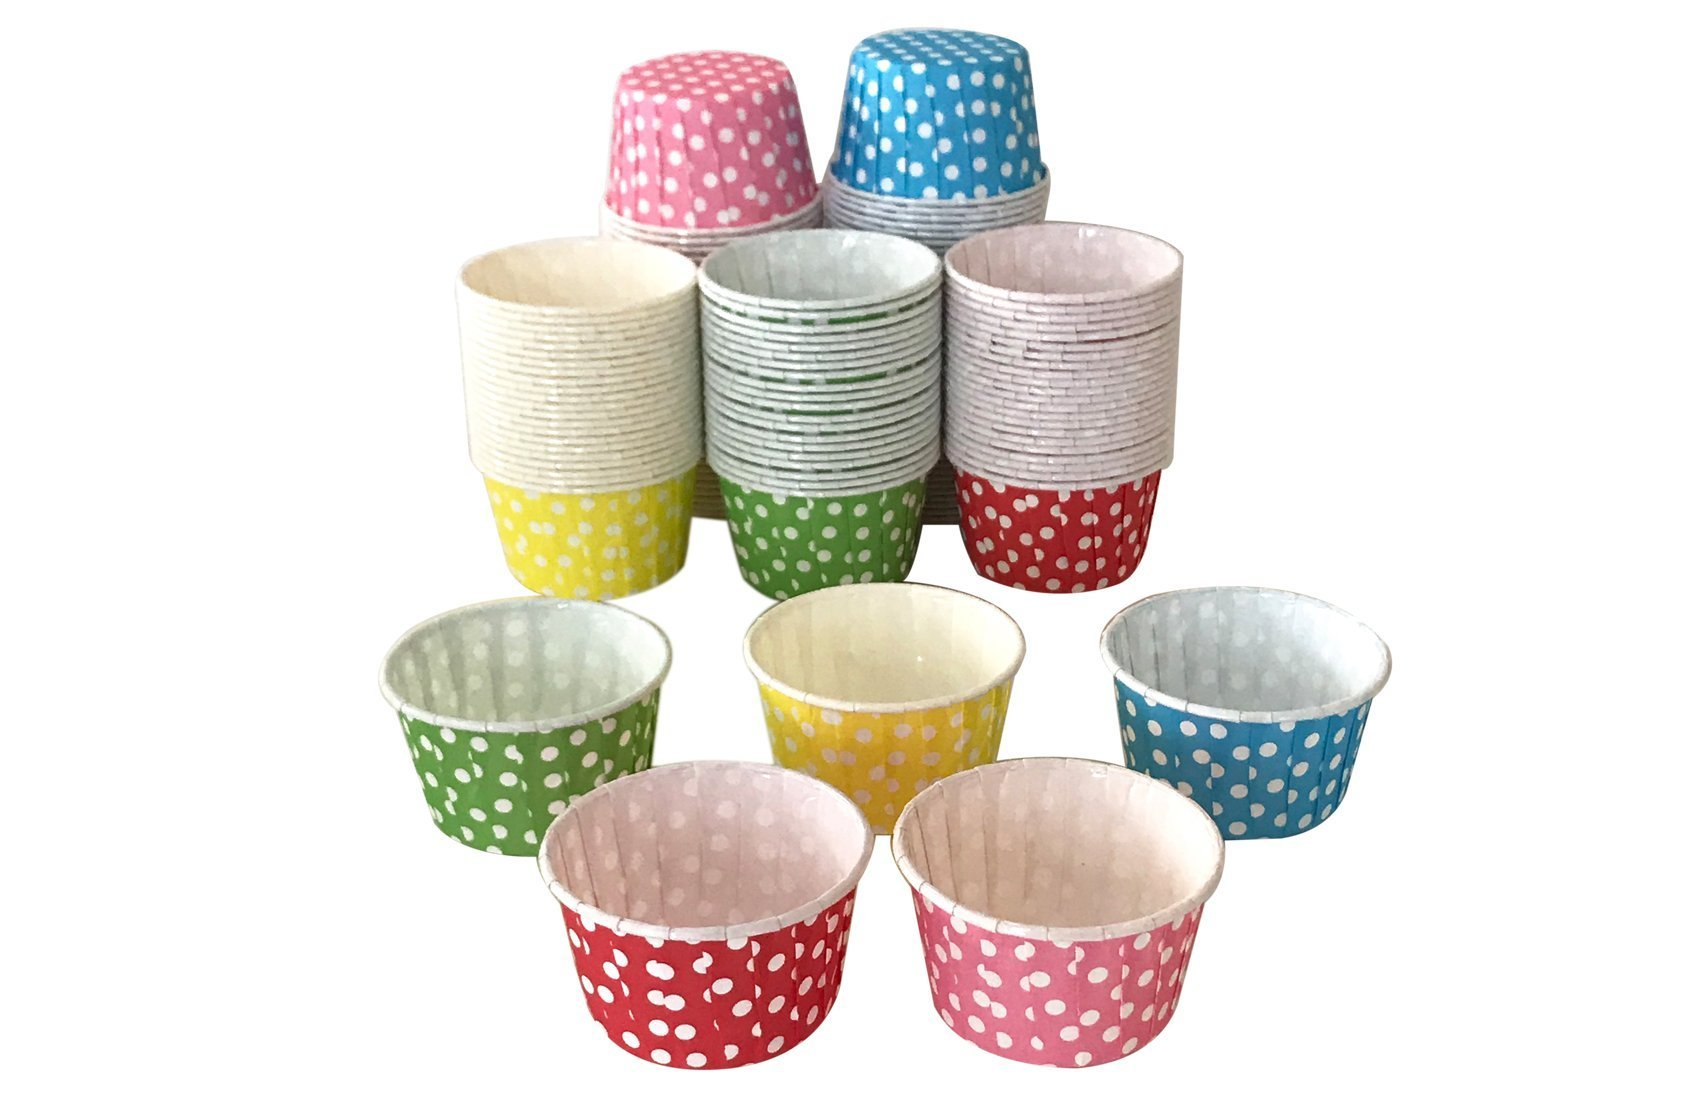 Polka Dot Cupcake Muffin Cups - (Assorted pack of 125-25 of each color) 2.5 inch Grease Proof and Sturdy Round Shape Baking Liners Paper Case Cup; No Muffin Pan is needed